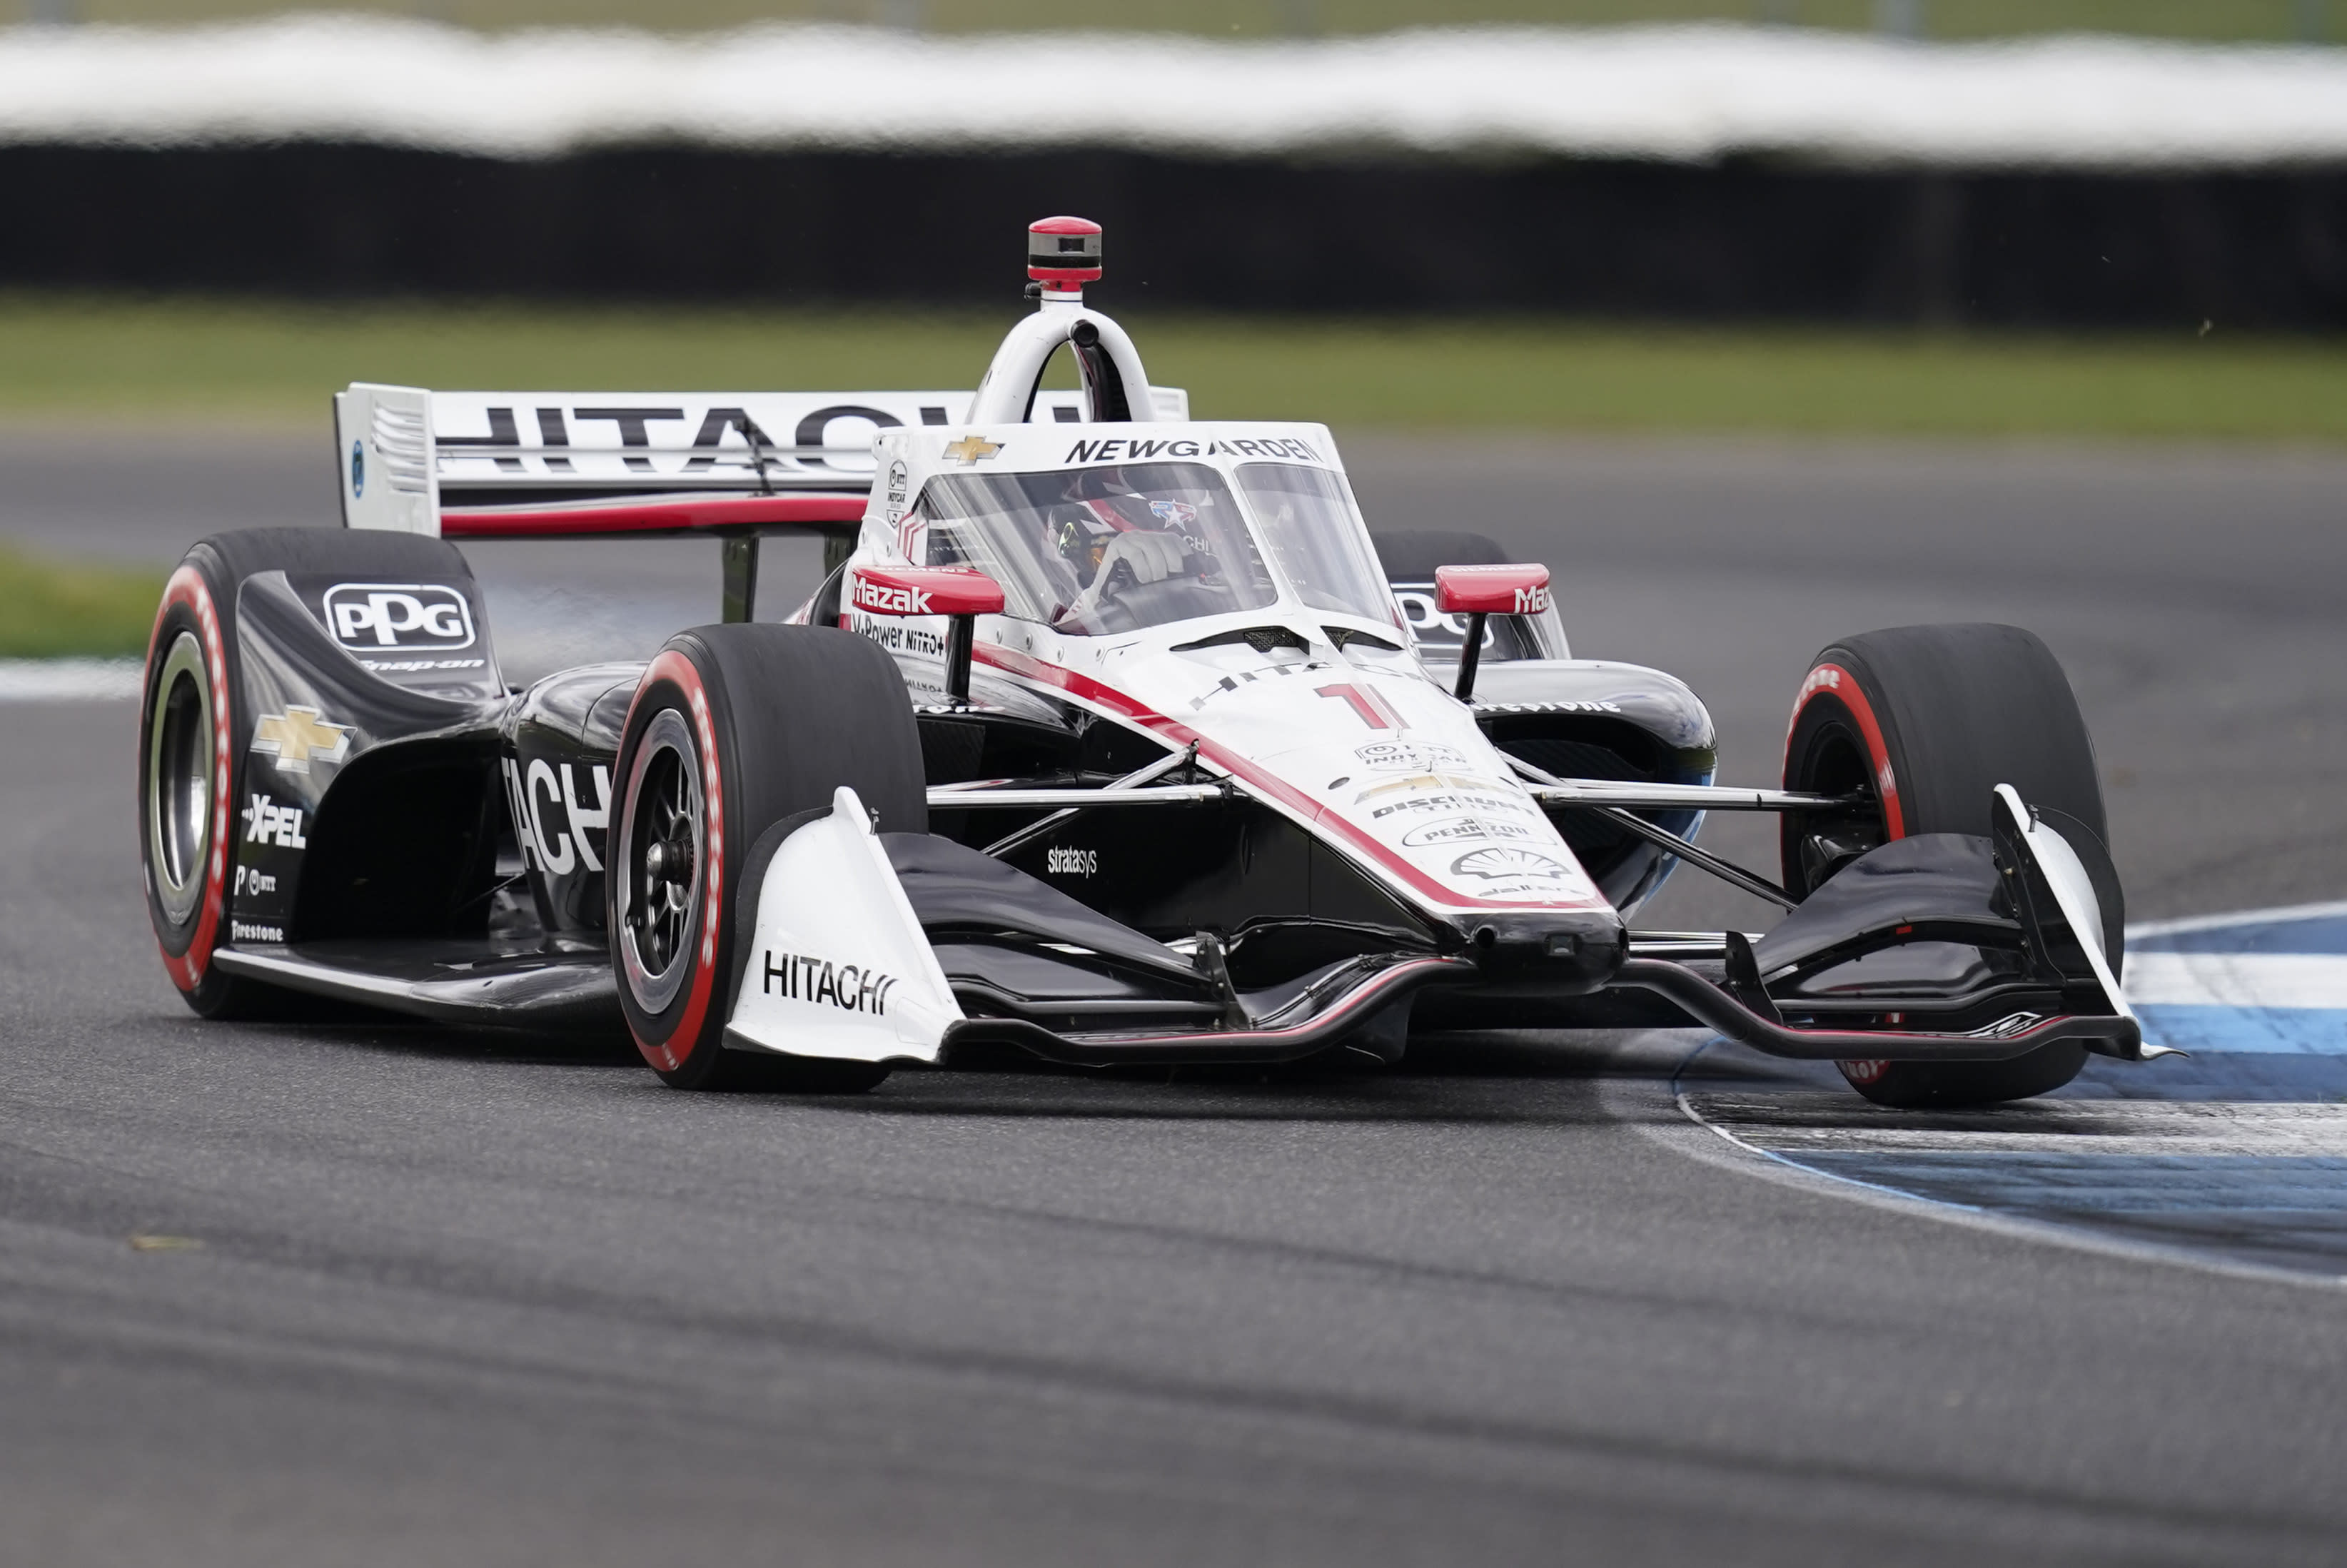 Josef Newgarden drives into a turn during an IndyCar auto race at Indianapolis Motor Speedway, Friday, Oct. 2, 2020, in Indianapolis. (AP Photo/Darron Cummings)